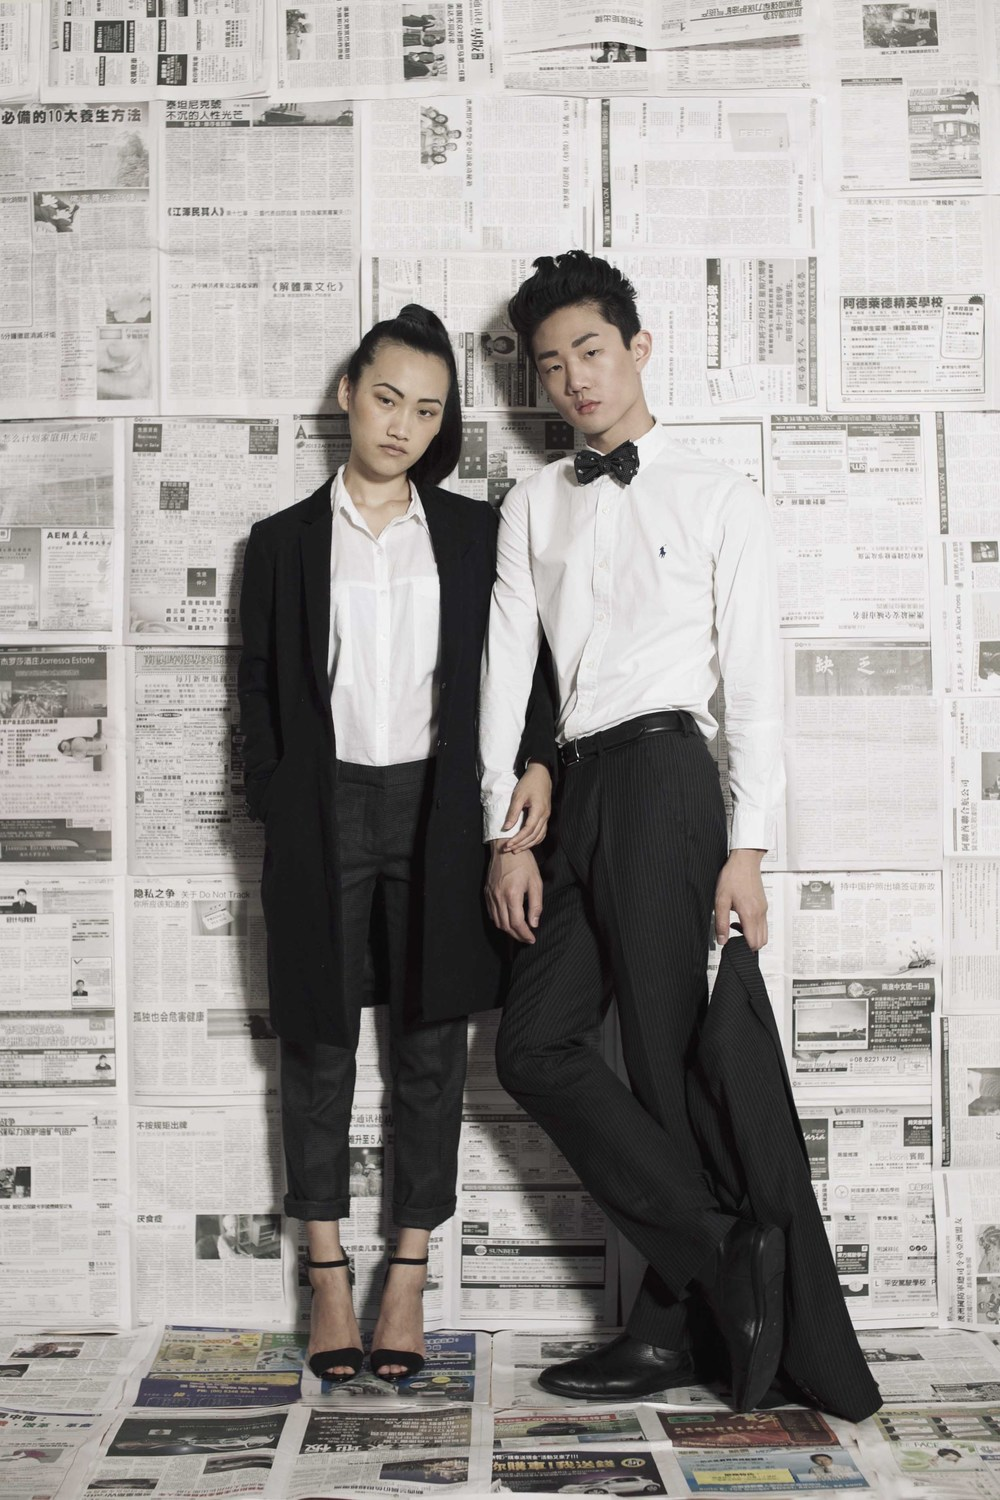 Jing wears: Jun Takahashi for Uniqlo coat, ASOS shirt, Miu Miu trousers, Zara shoes. Pierre wears: Ben Sherman suit, Polo Ralph Lauren shirt, Alexander McQueen bow tie, Armani Collezioni boots, Polo Ralph Lauren belt.